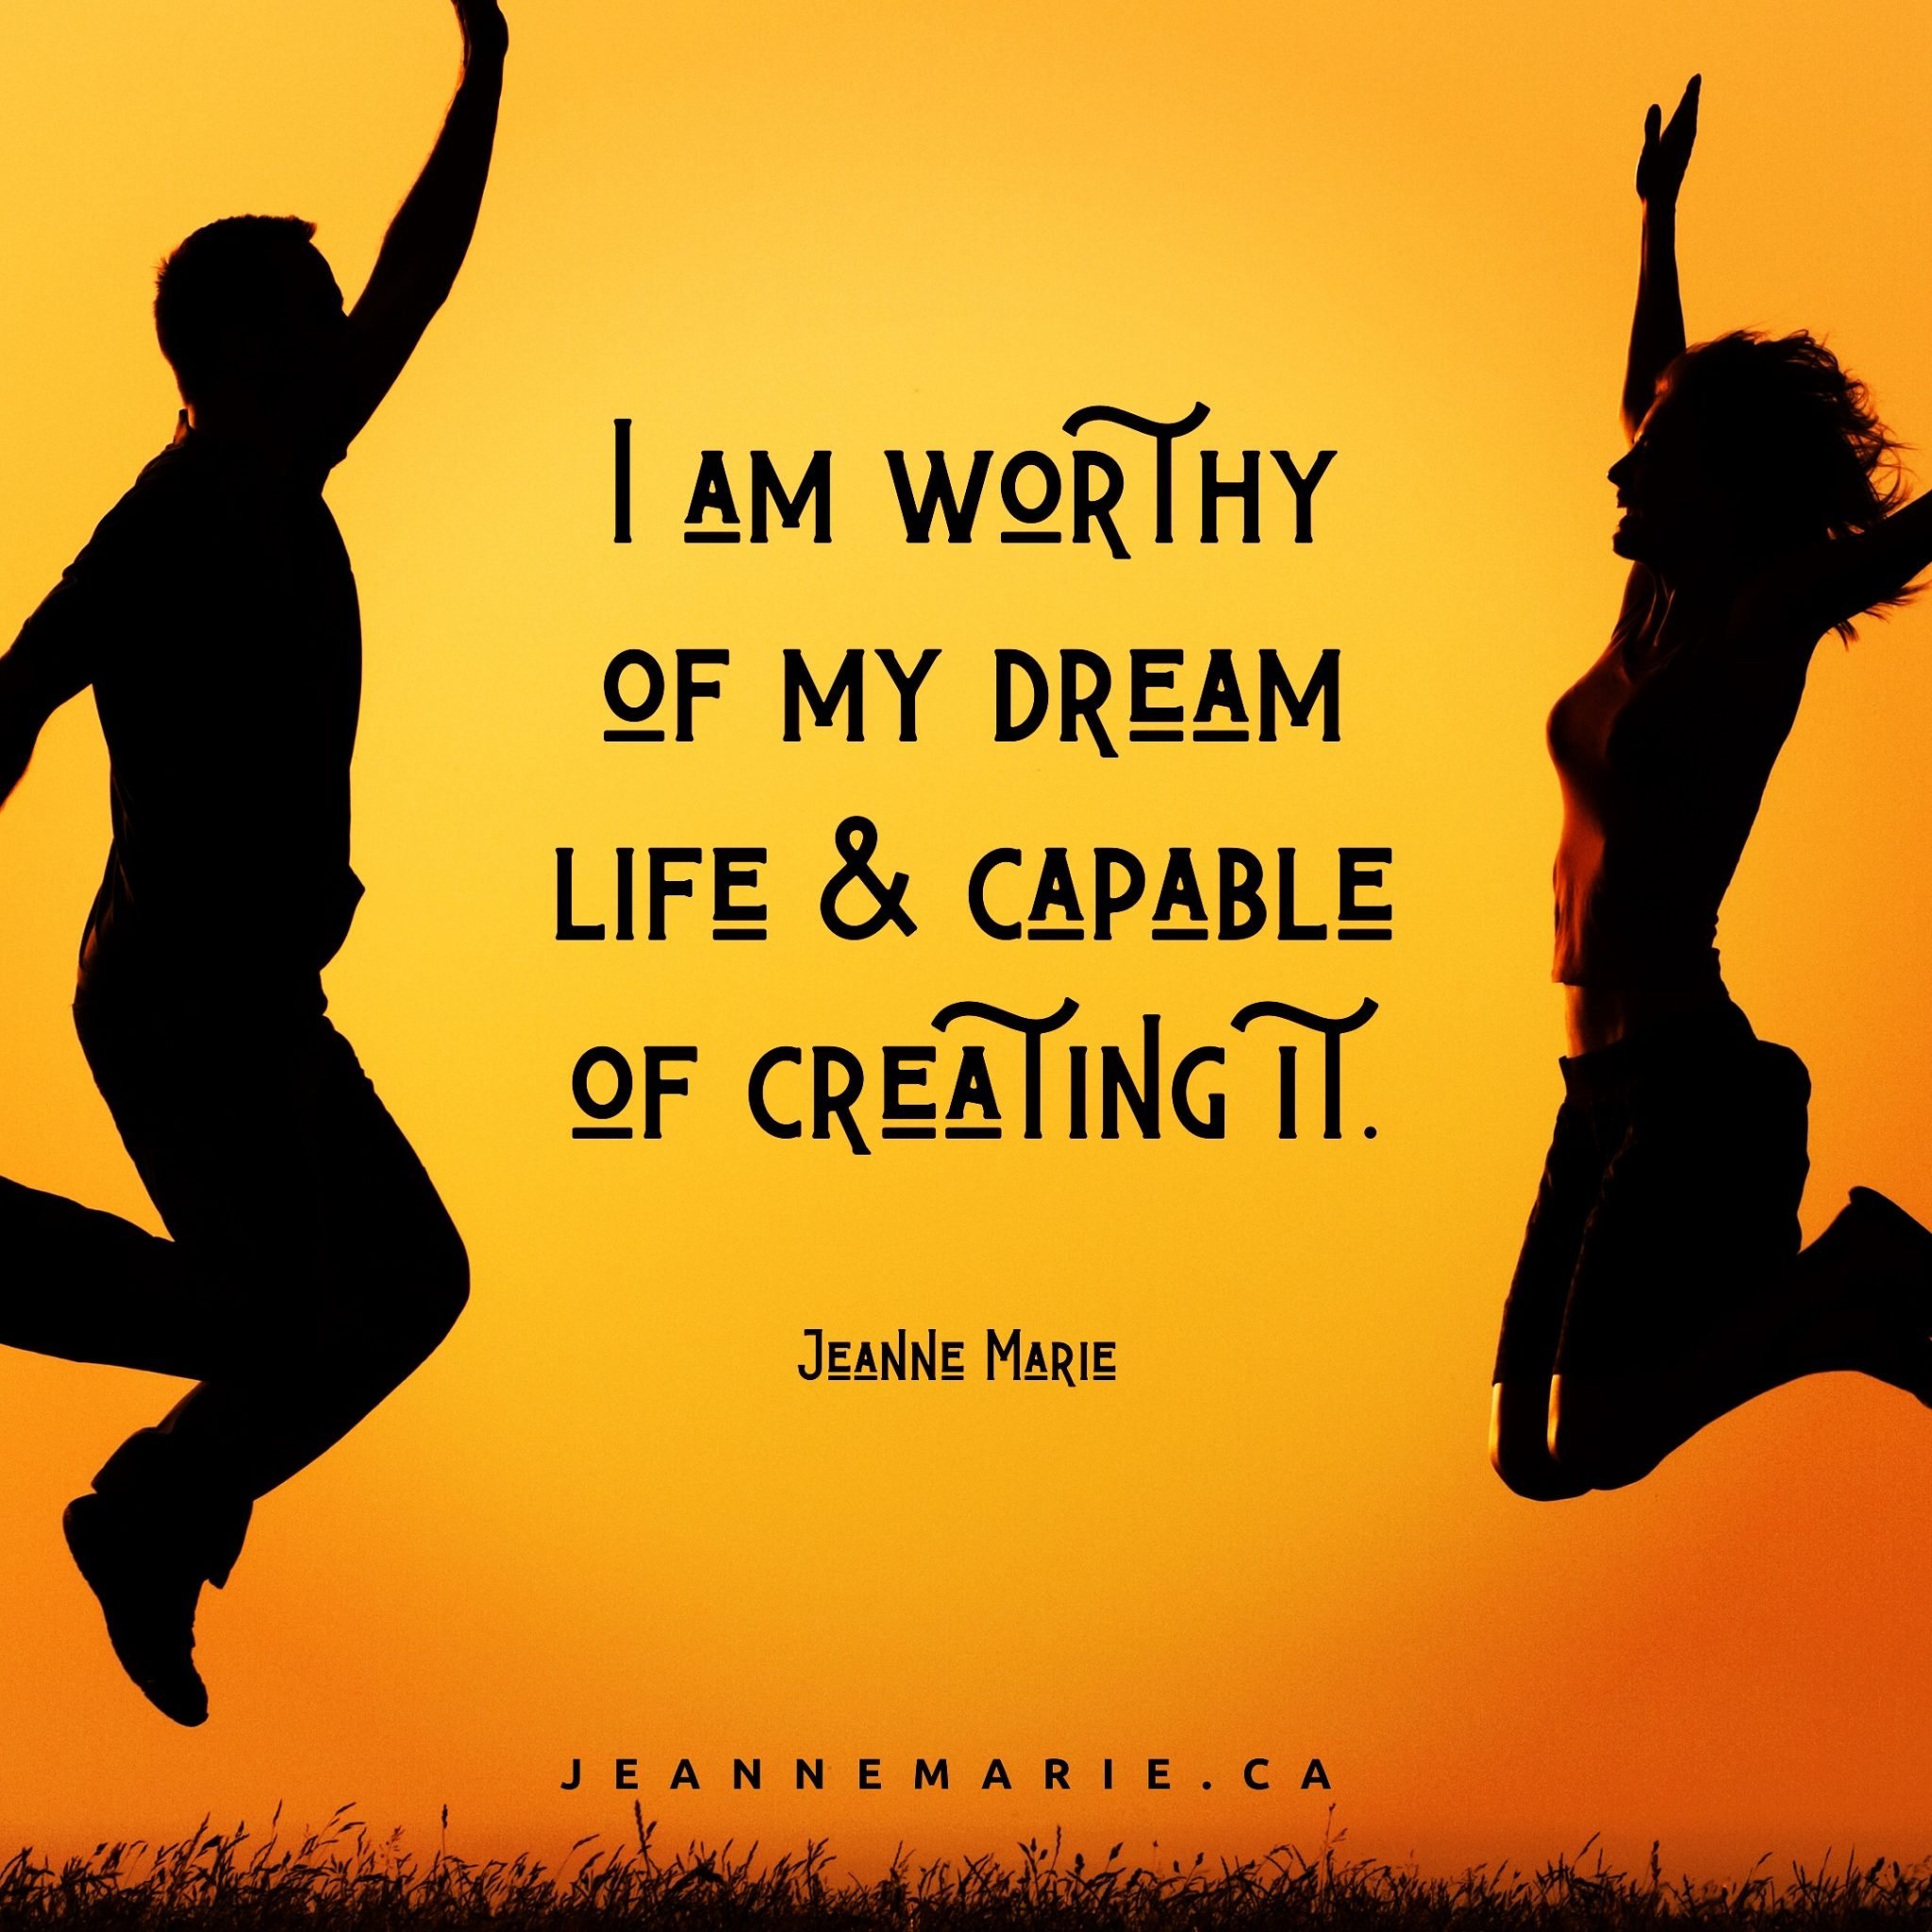 I am worthy of my dream life and capable of creating it